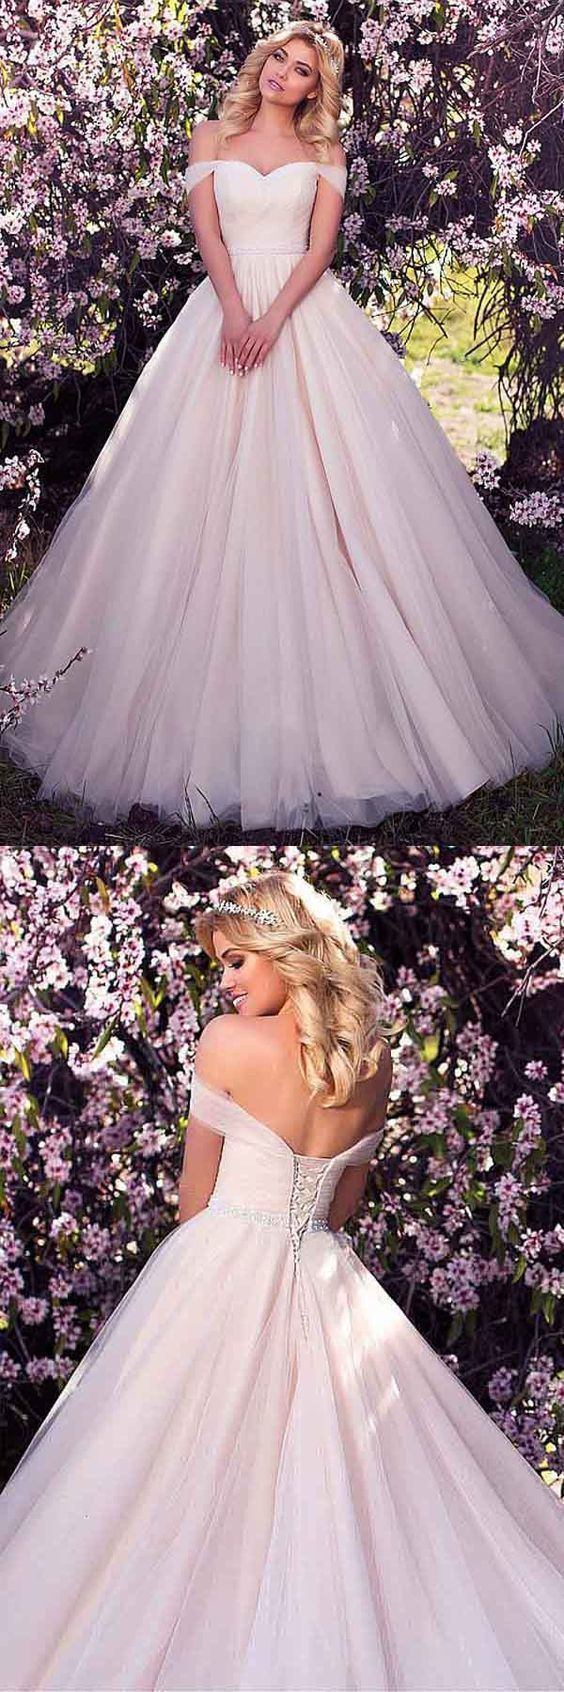 Off Shoulder Tulle Wedding Dress,Ball Gown Wedding Dresses, Sexy Bridal Dresses